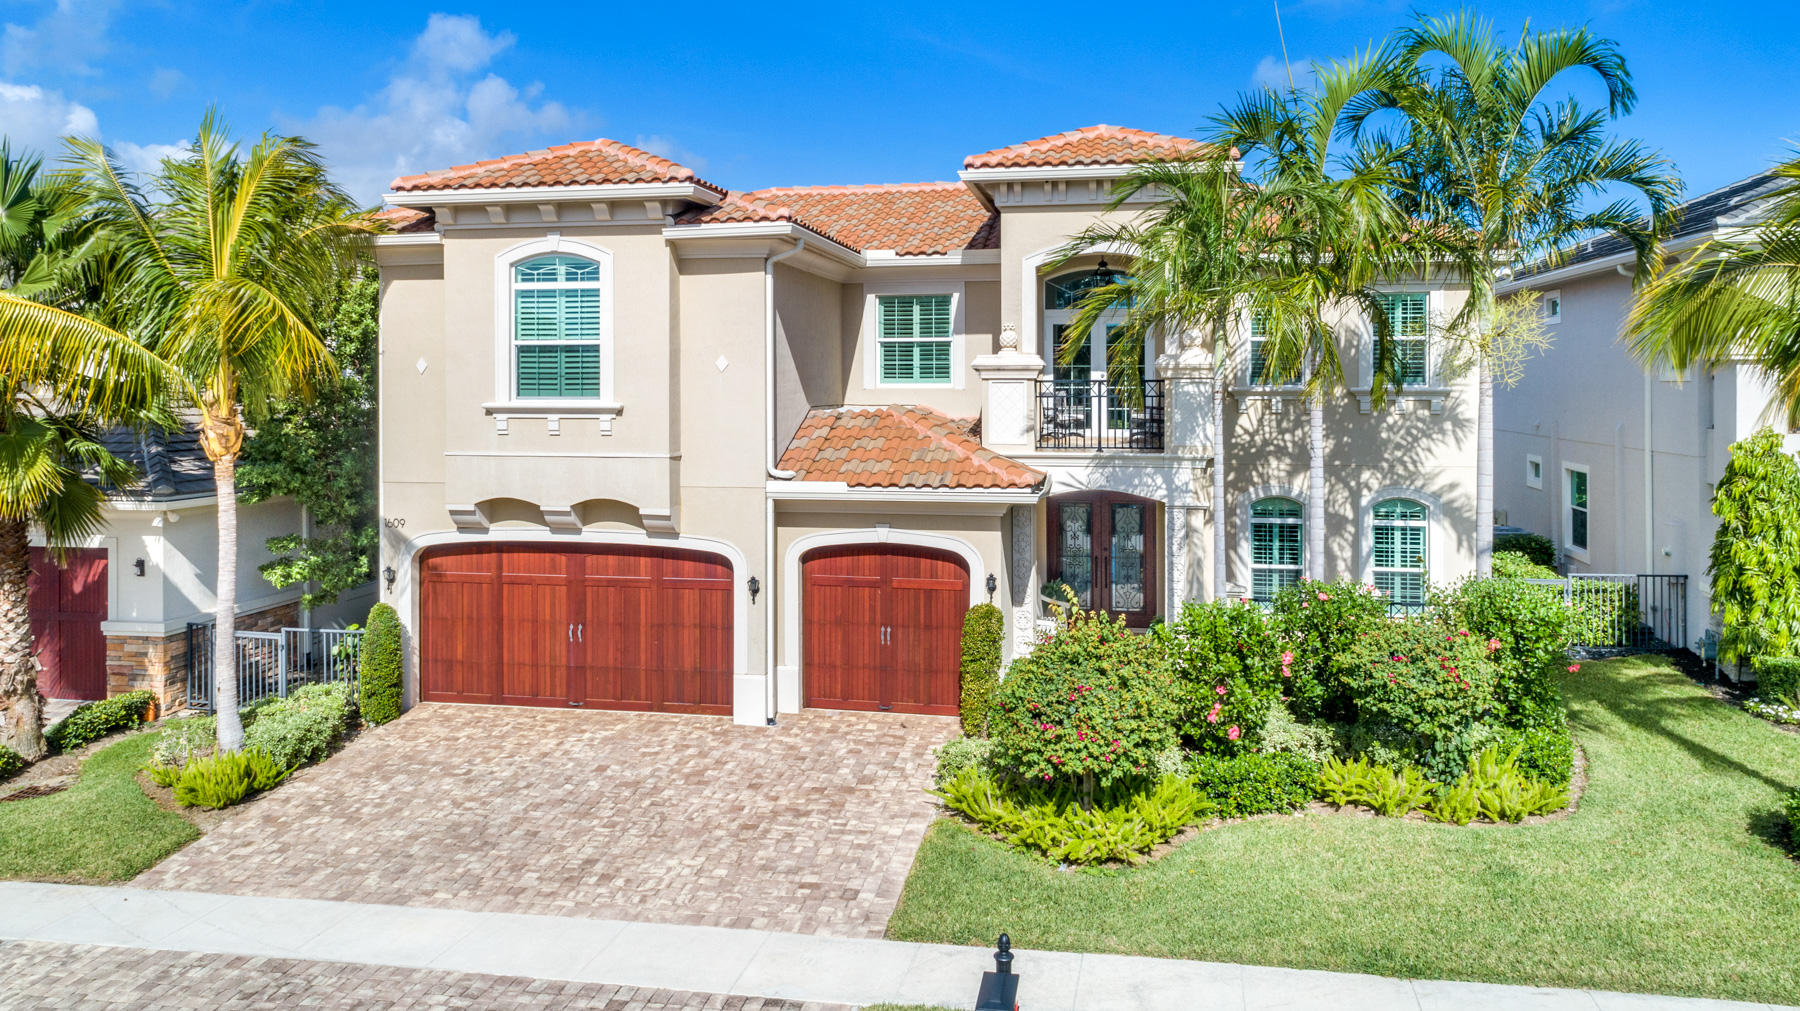 New Home for sale at 1609 Hemingway Drive in Juno Beach